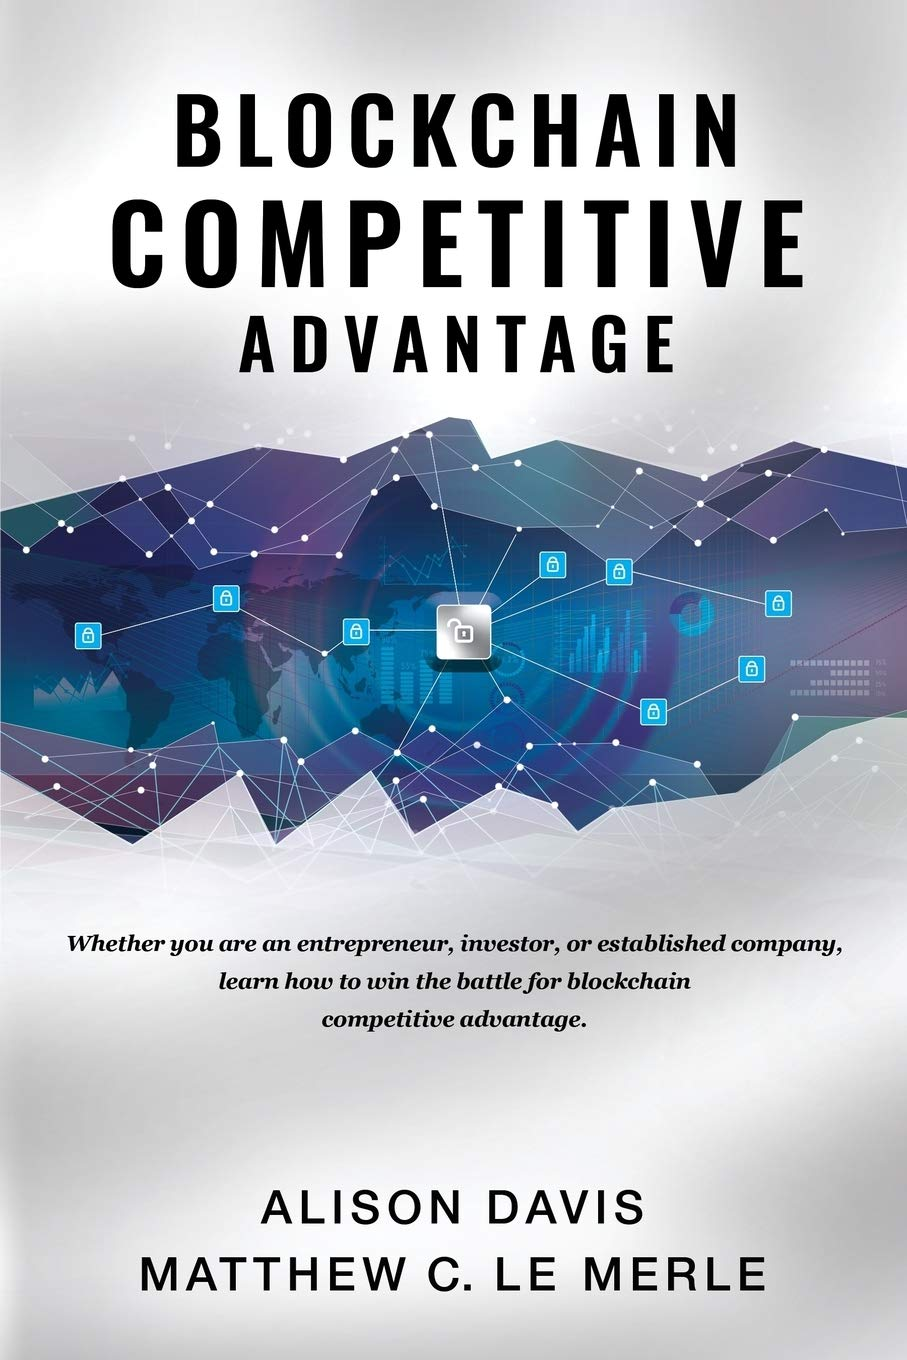 Image OfBlockchain Competitive Advantage: Whether You Are An Entrepreneur, Investor, Or Established Company, Learn How To Win The ...